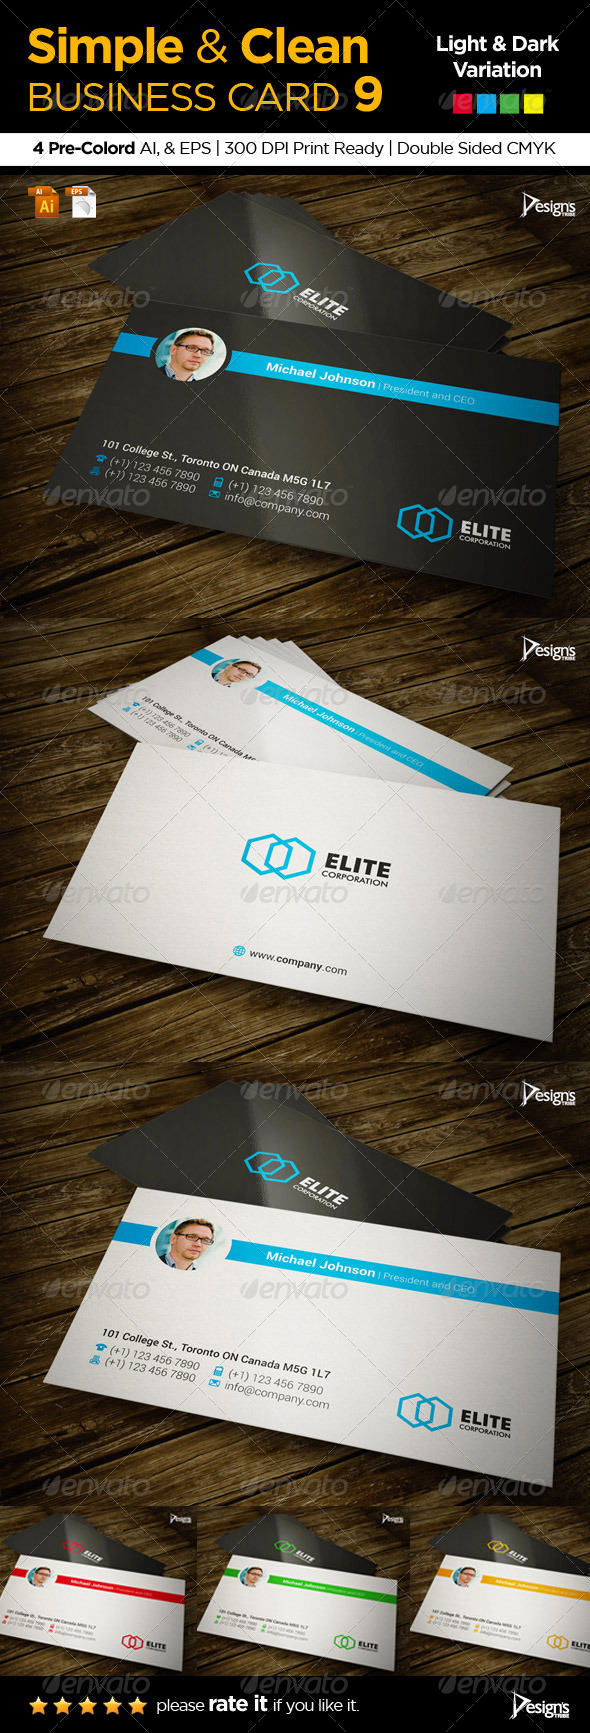 Simple and Clean Business Card 9 - Corporate Business Cards